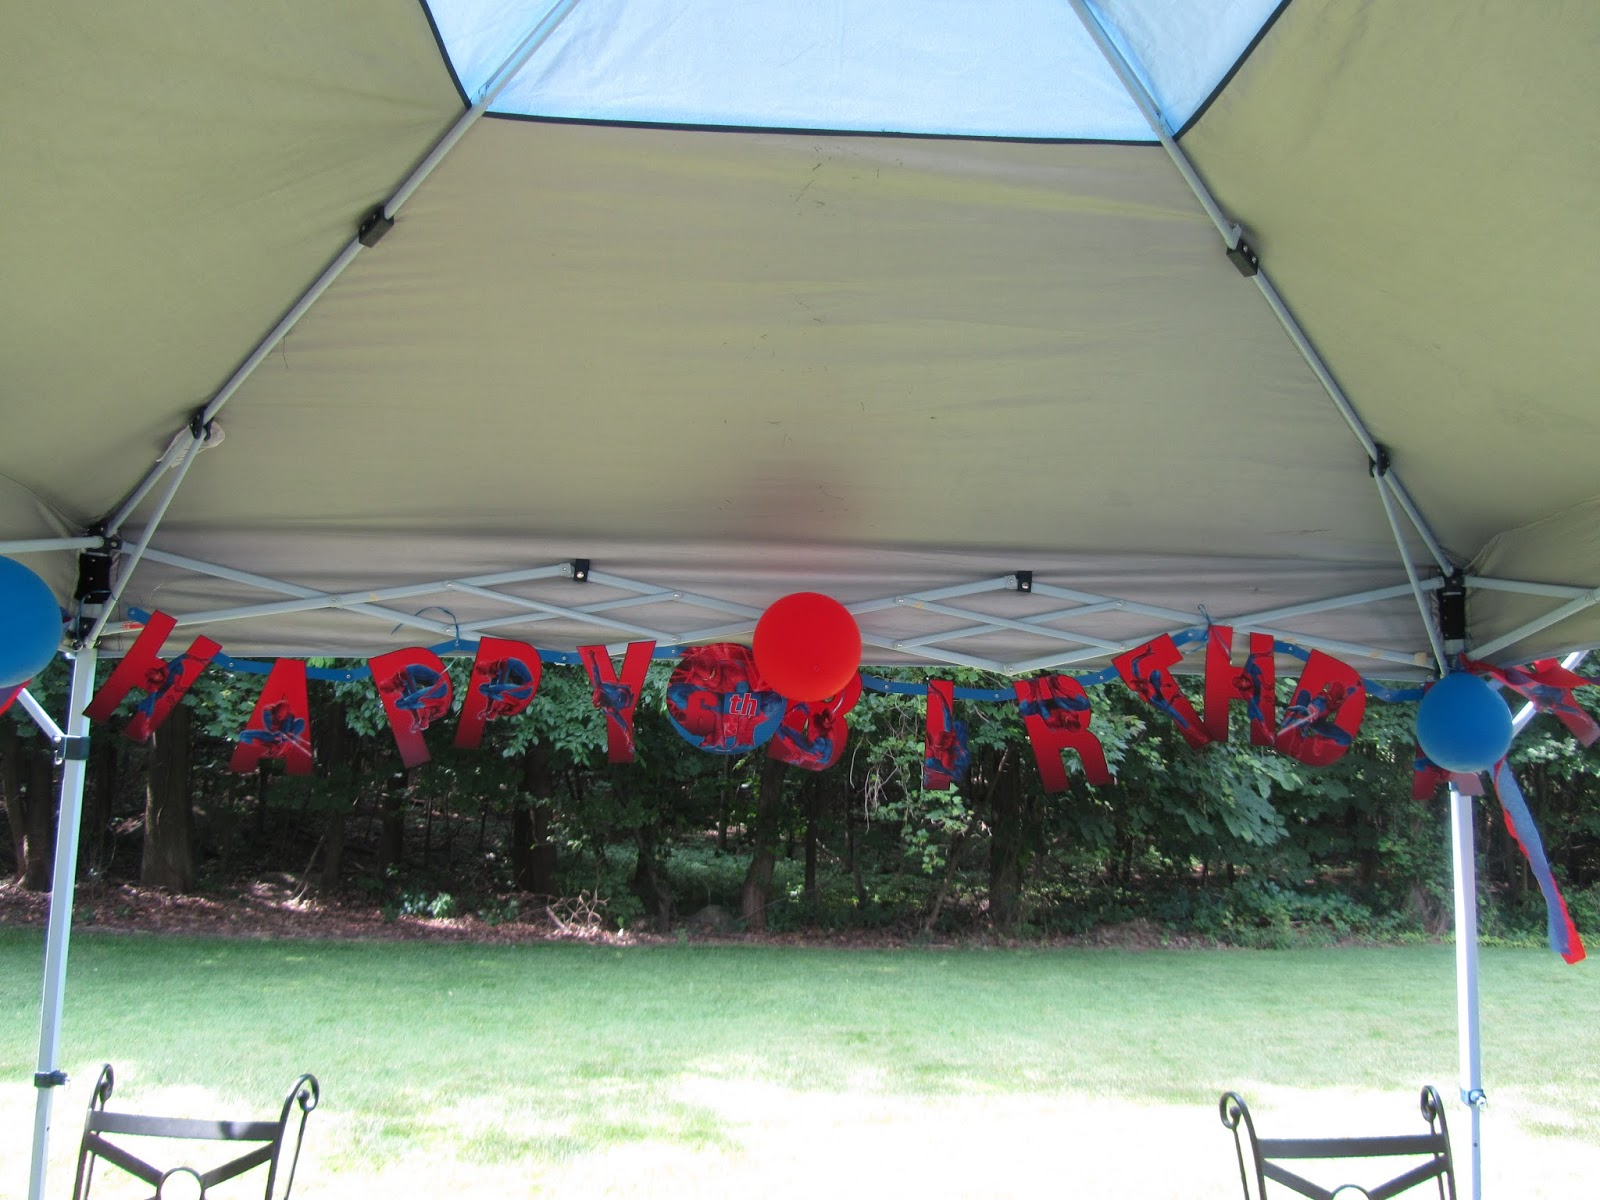 We set up a tent in the backyard and decorated with a Spider-Man banner red and blue balloons and the contents of a Spider-Man decorating kit. & ROCmomma: How to Have an Amazing Spider-Man Birthday Party: Part 2